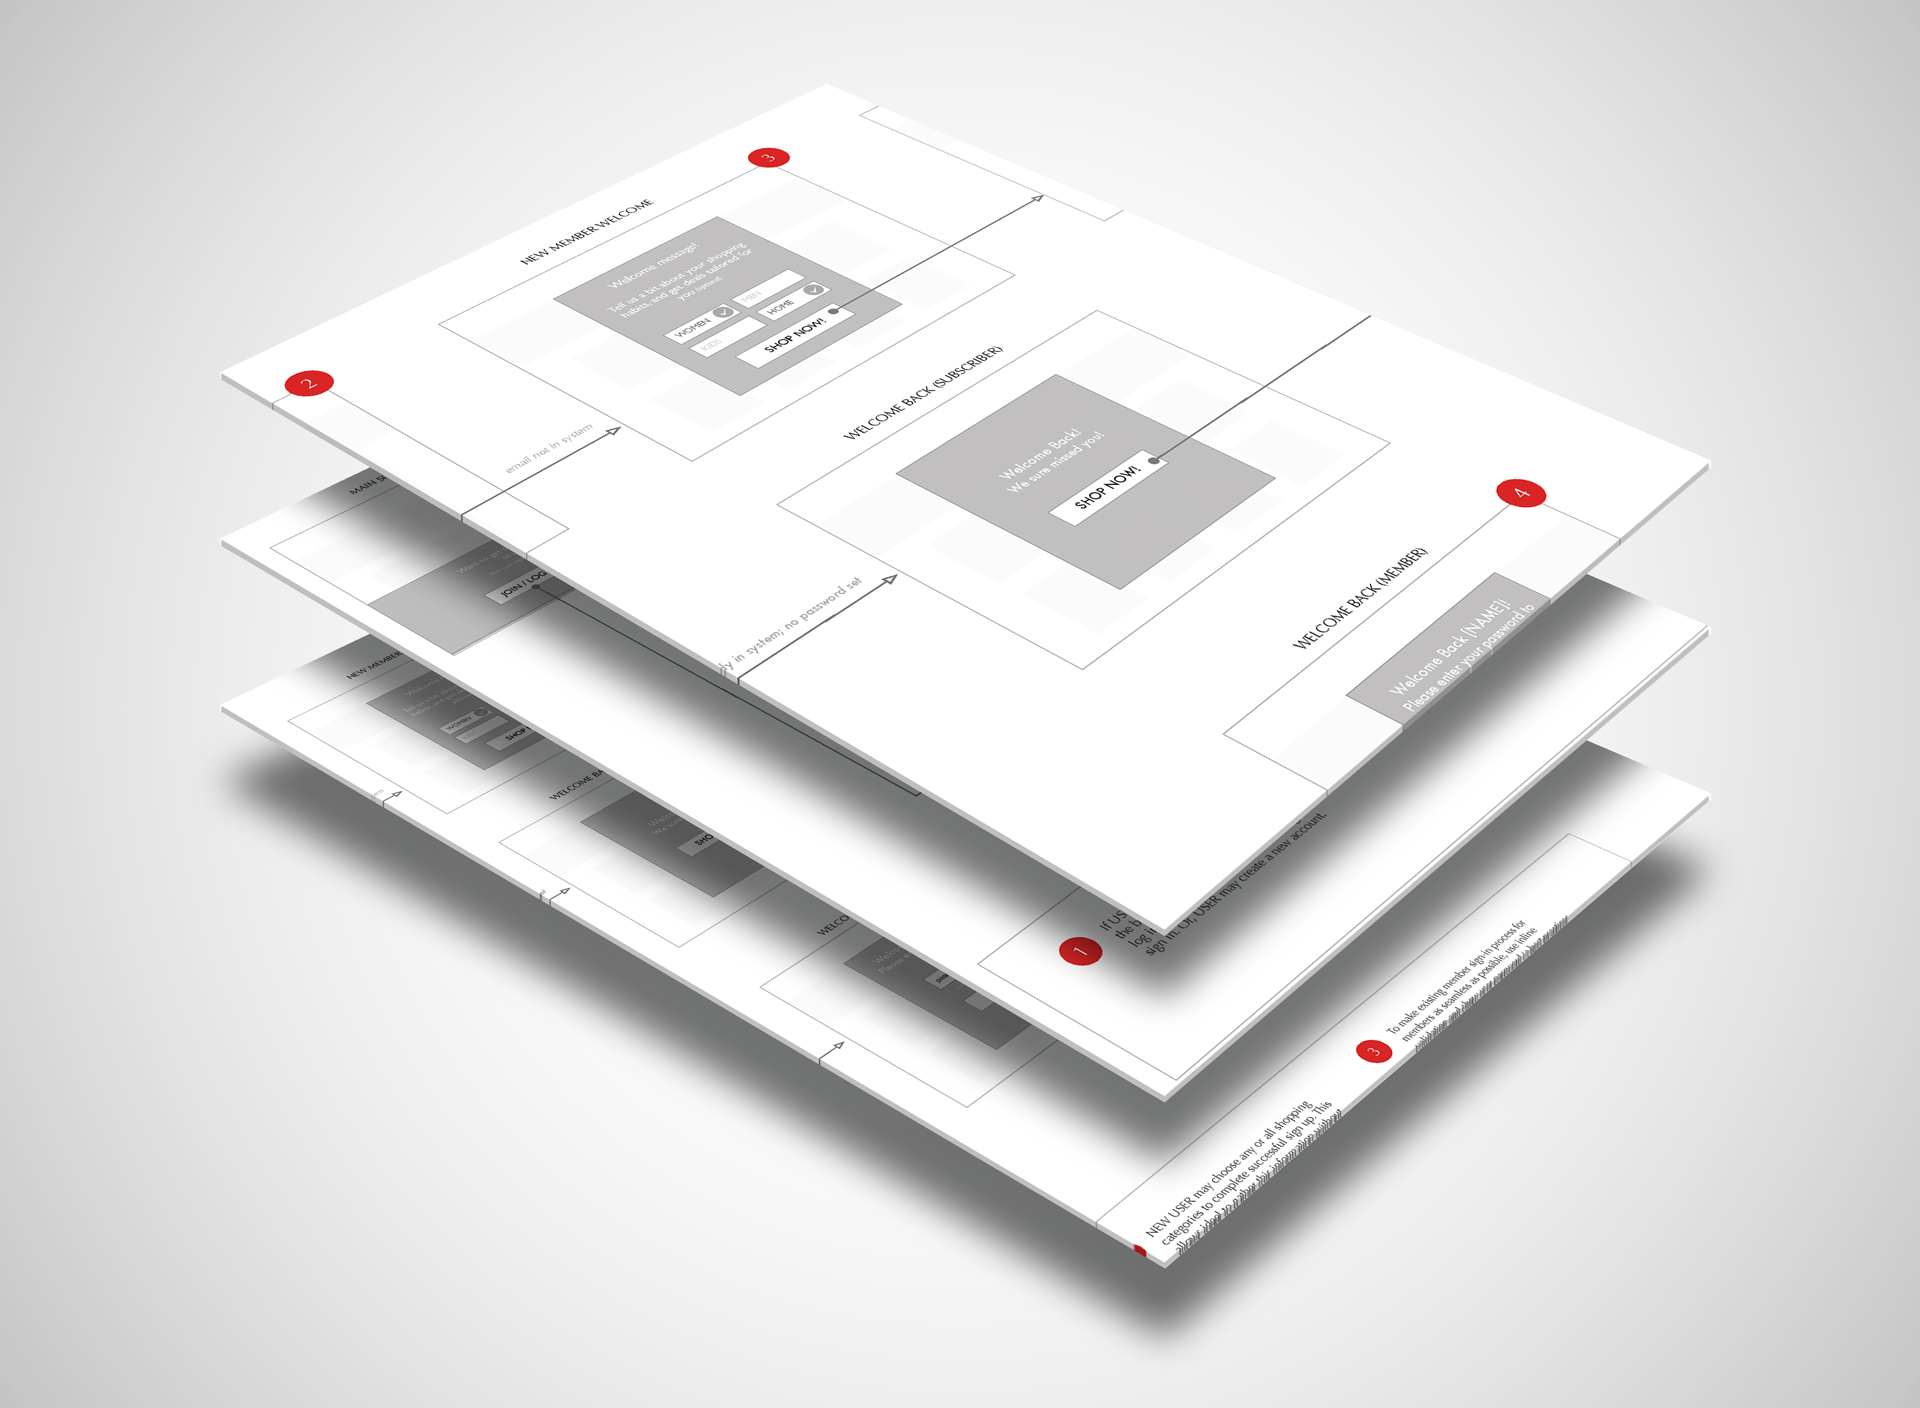 wireframe sample